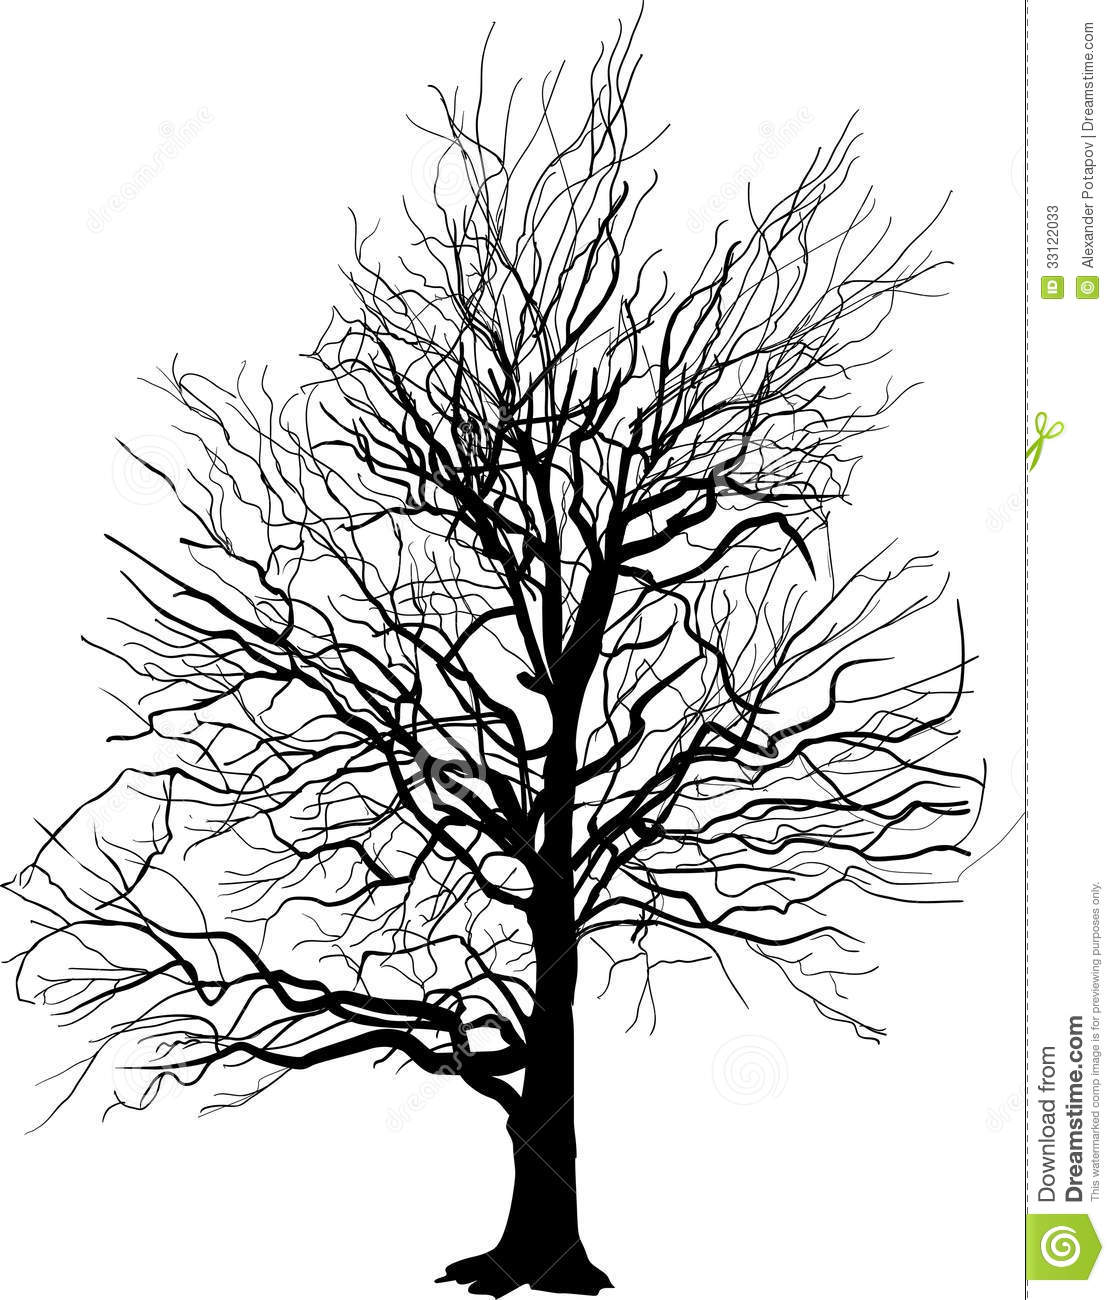 ... tree silhouette displaying 20 images for bare tree silhouette toolbar